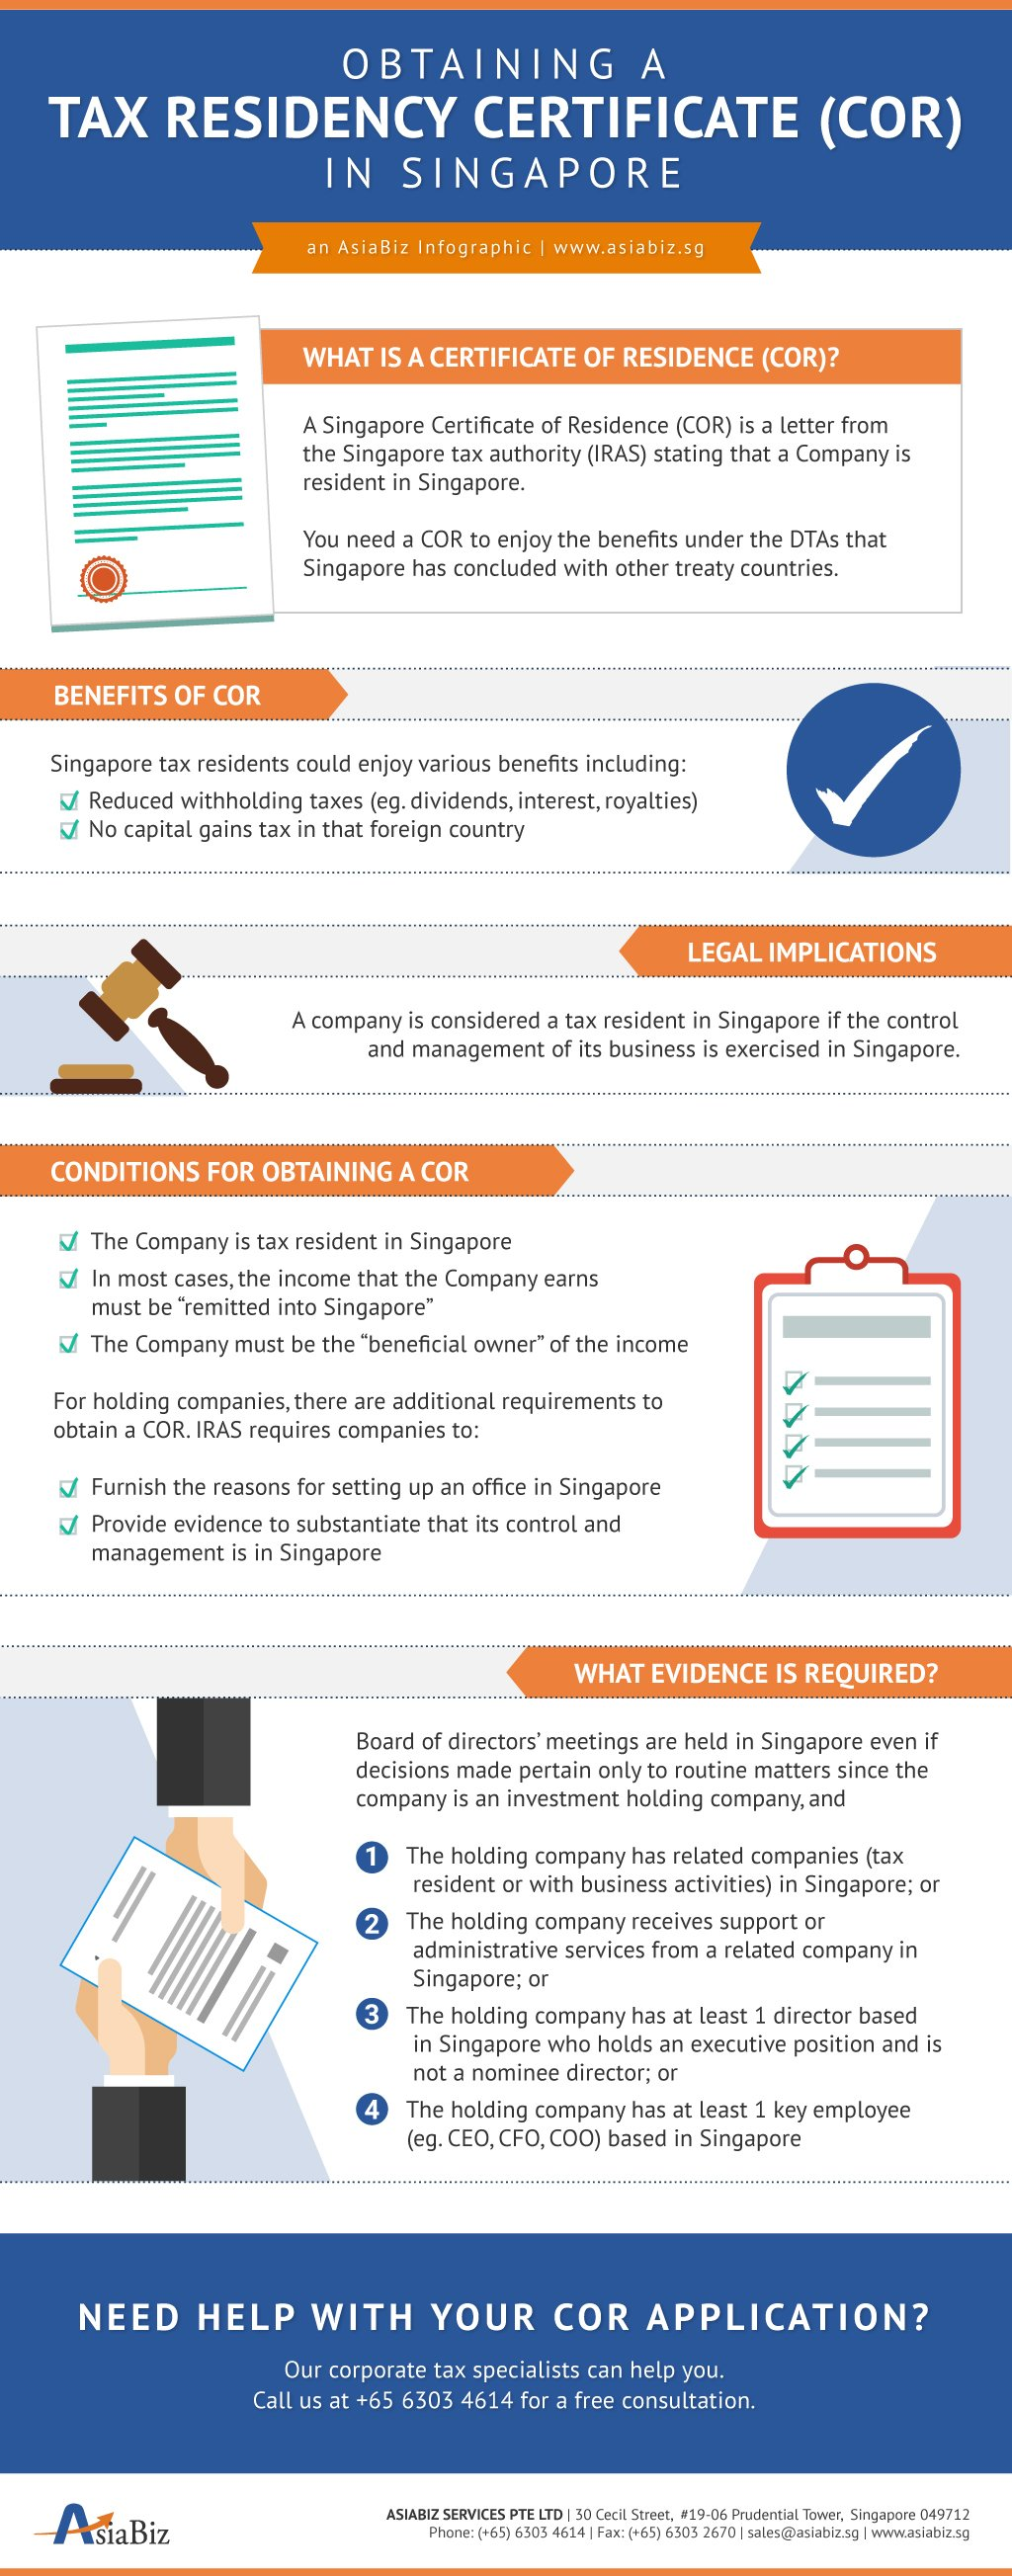 Obtaining_a_Tax_Residency_Certificate_in_Singapore-AsiaBiz_Infographic